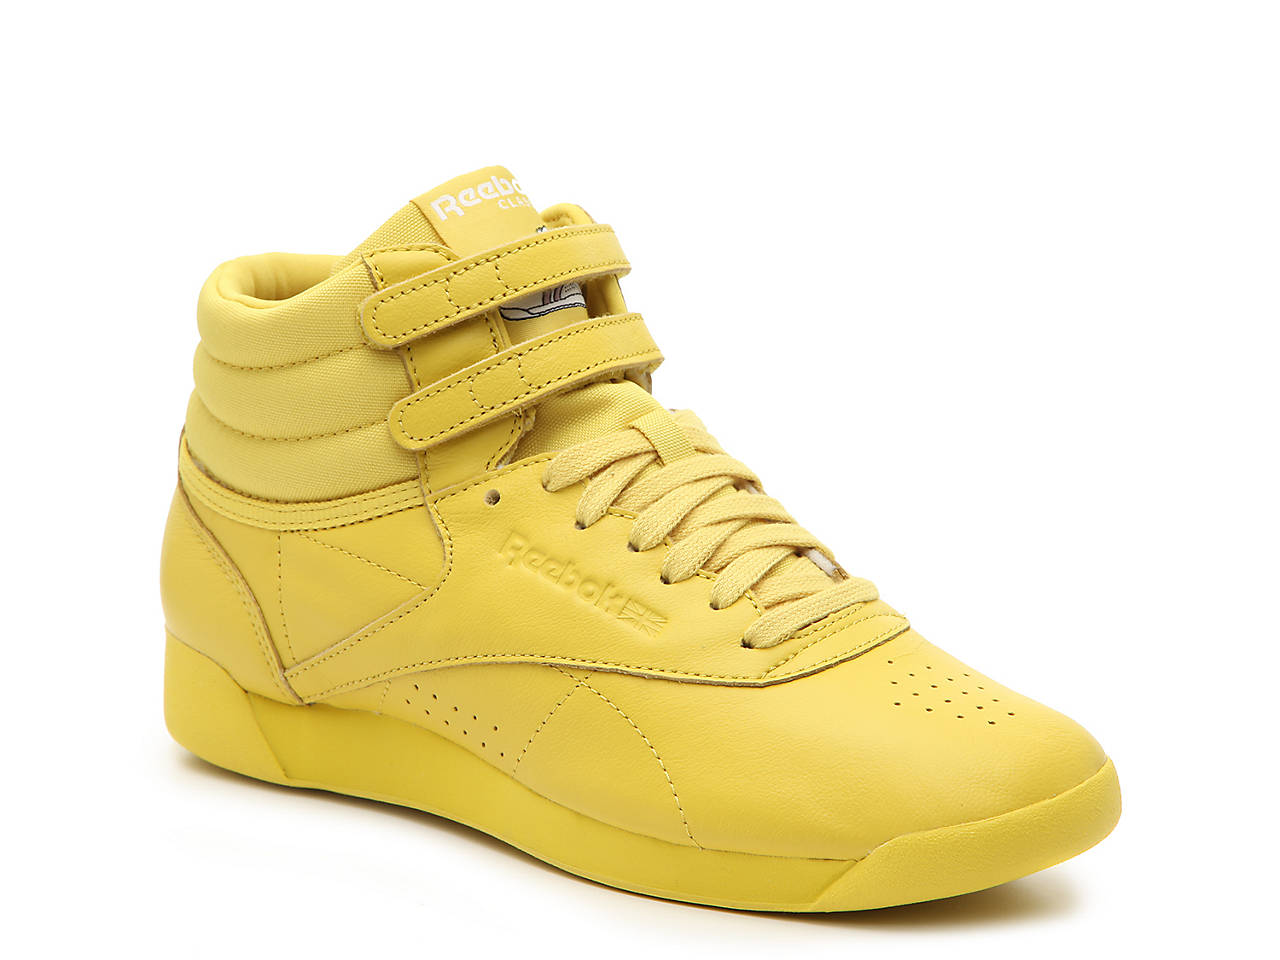 9751ed77ae6 Reebok Freestyle Hi High-Top Sneaker - Women s Women s Shoes